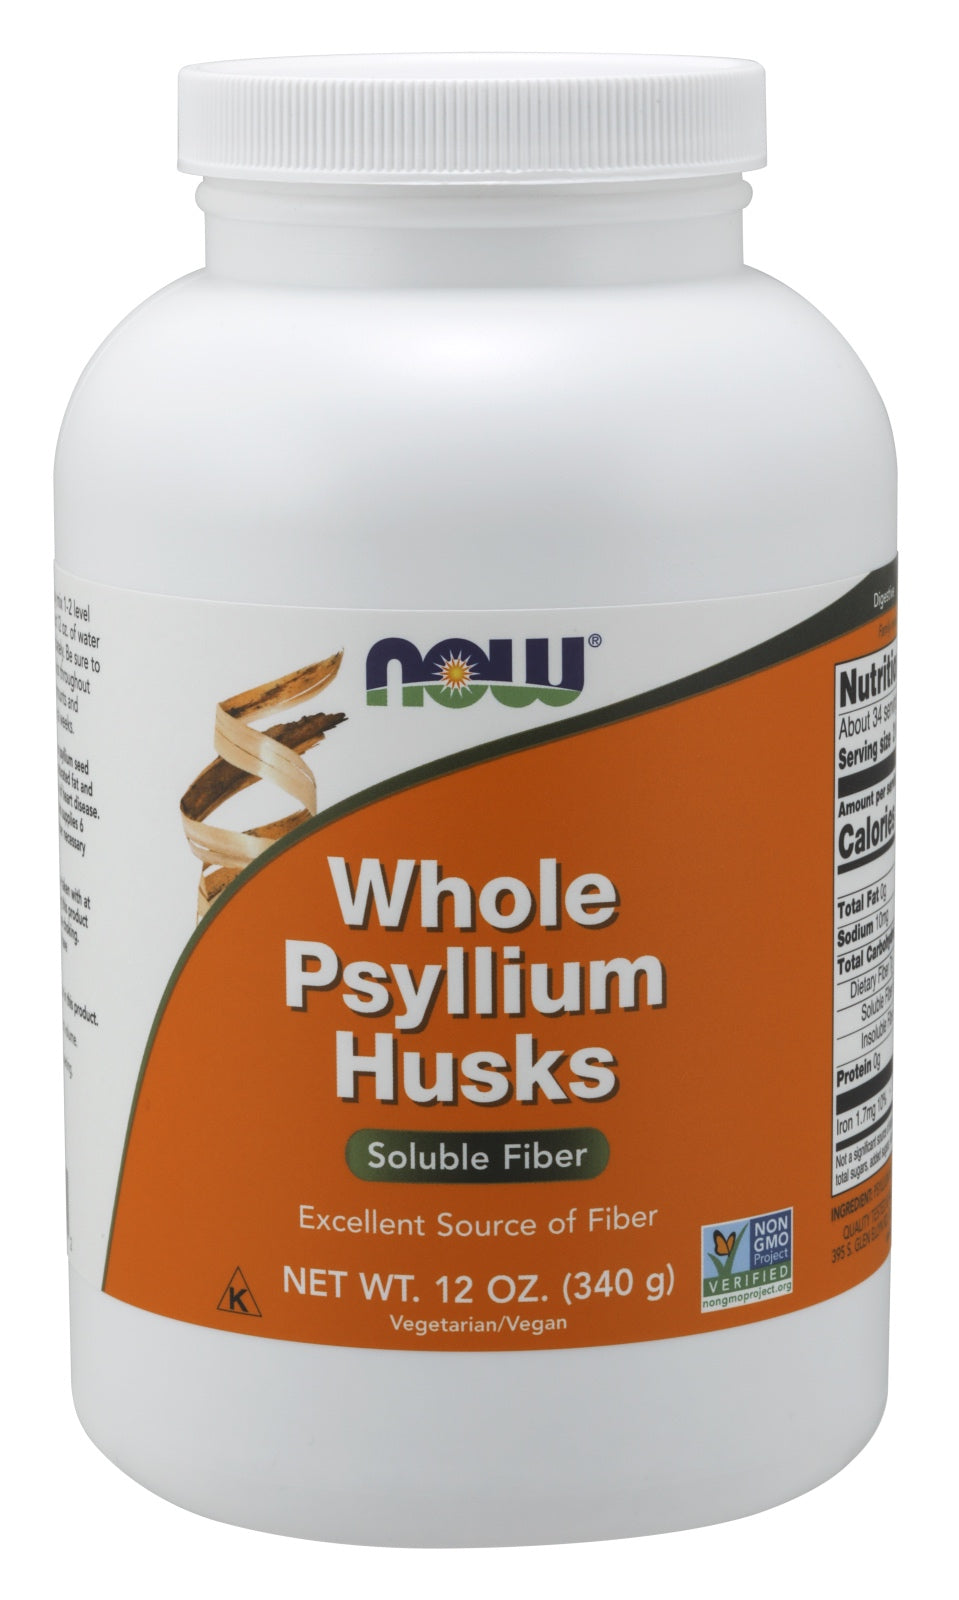 Psyllium Husks, Whole, 12 oz.